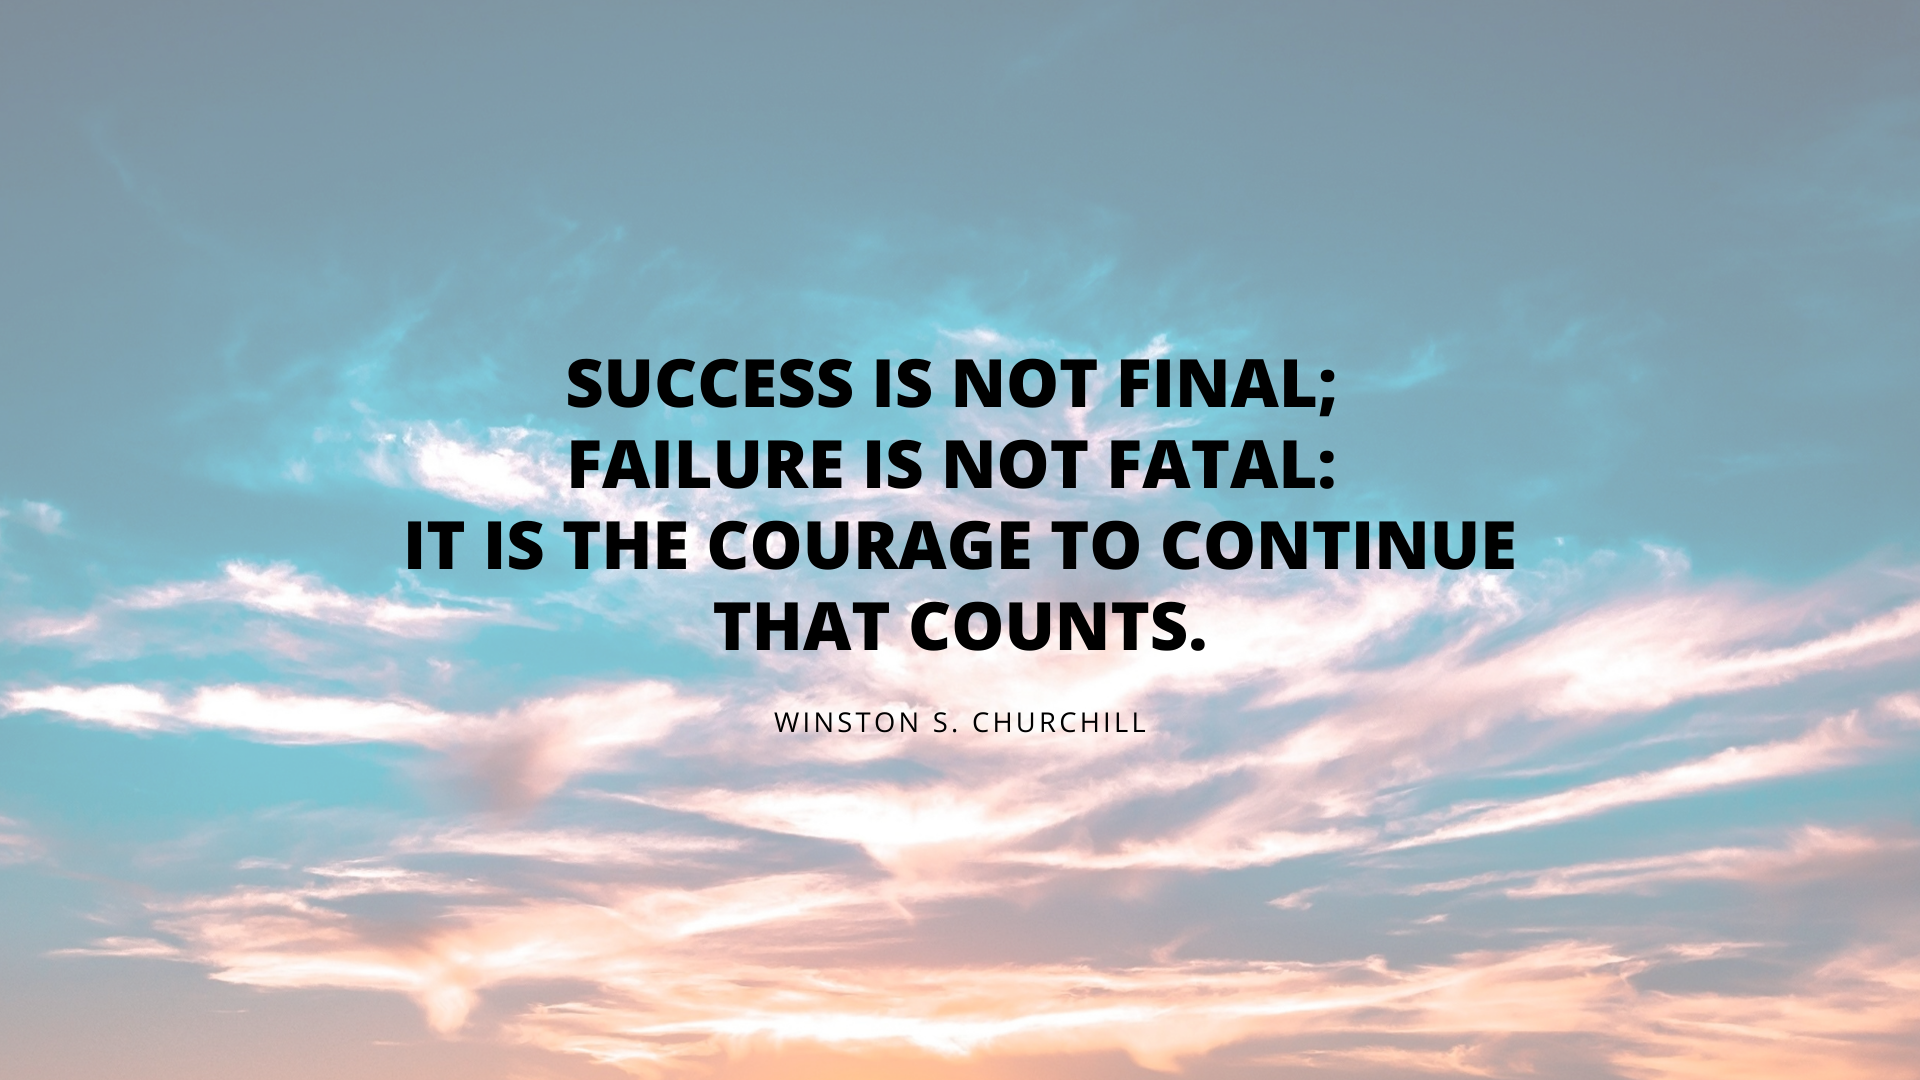 Motivational quote from Winston Churchill